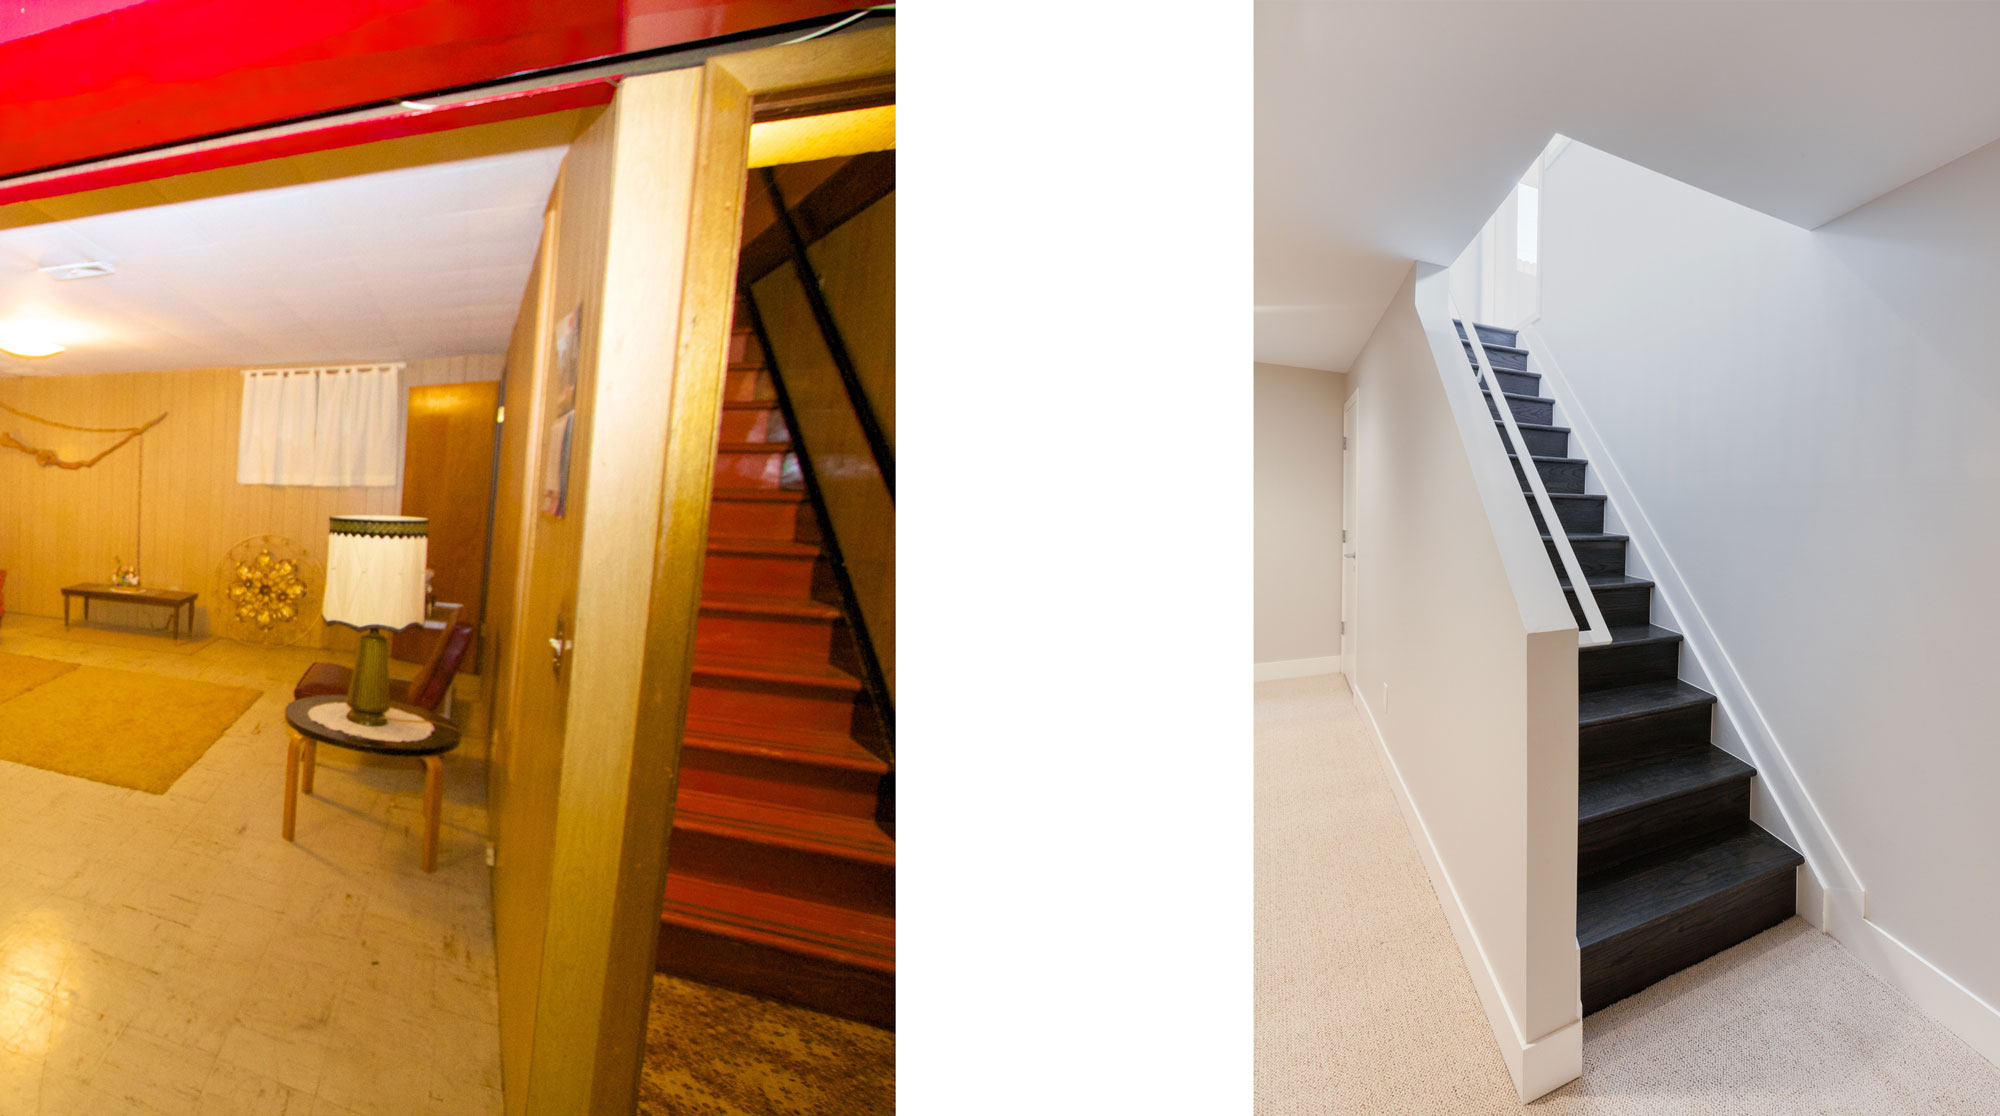 Basement-Stairs-before-after.jpg